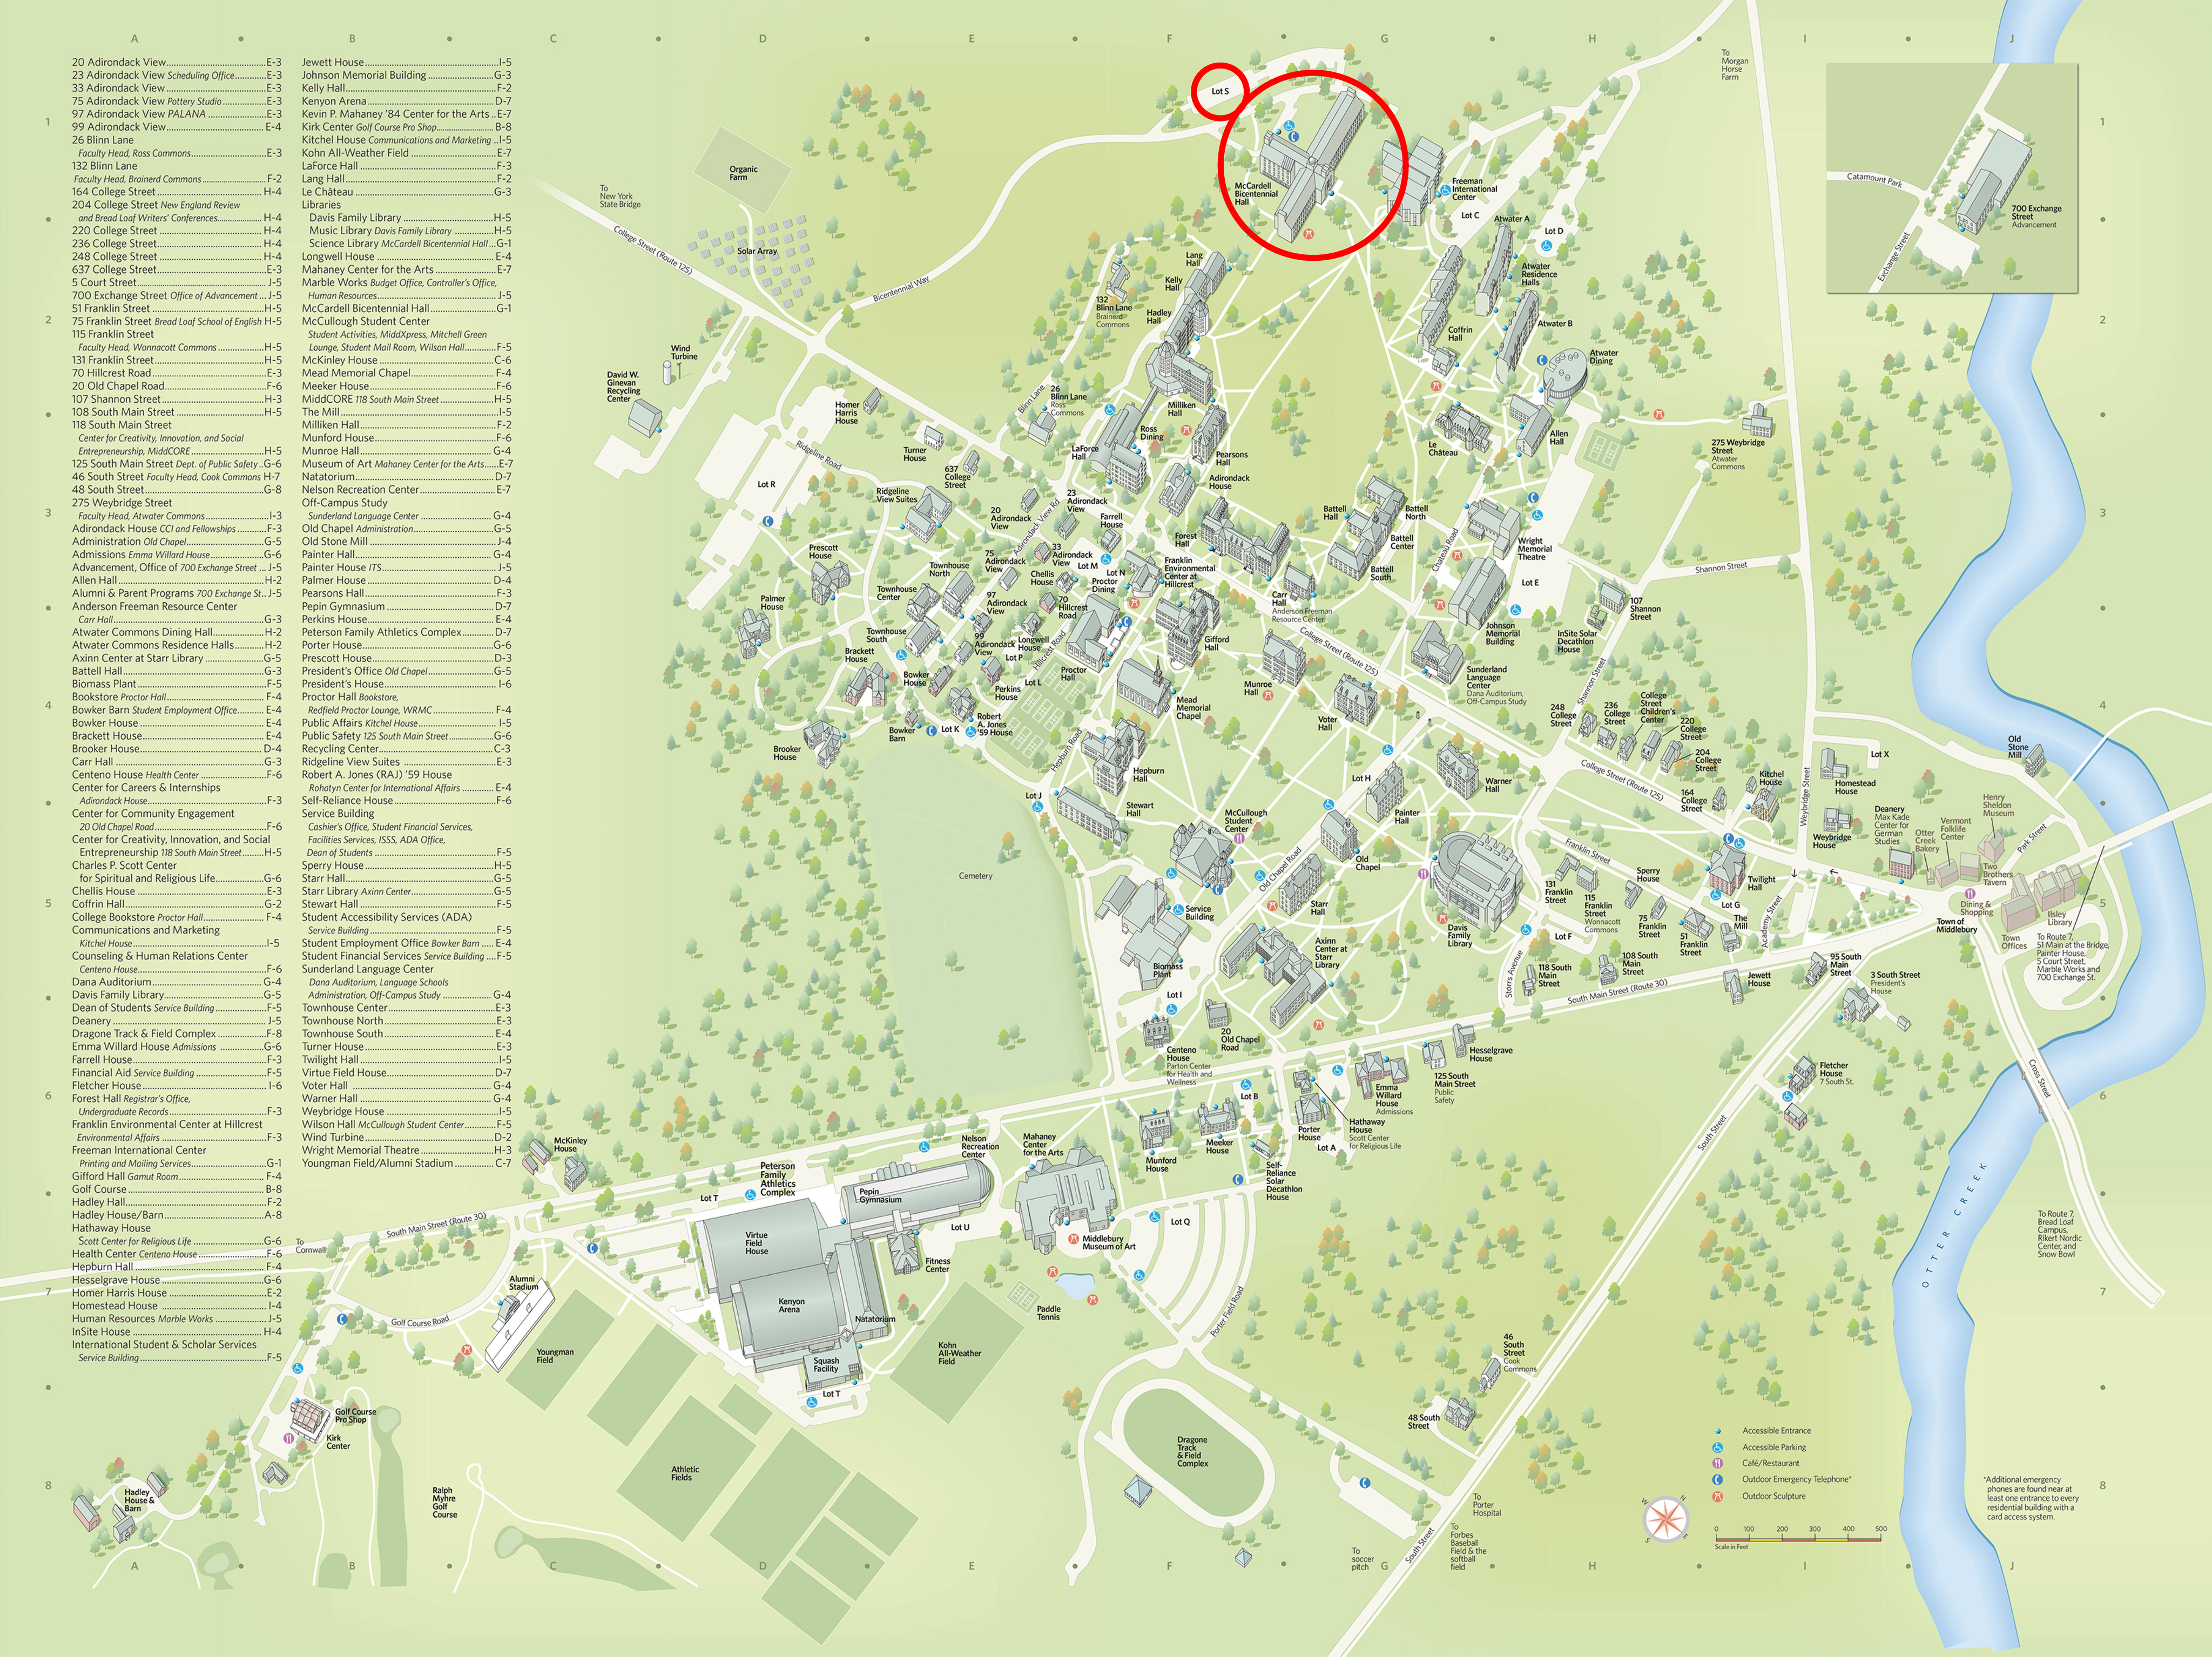 Middlebury Campus Map Locations – KNAC Student Research Symposium 2018